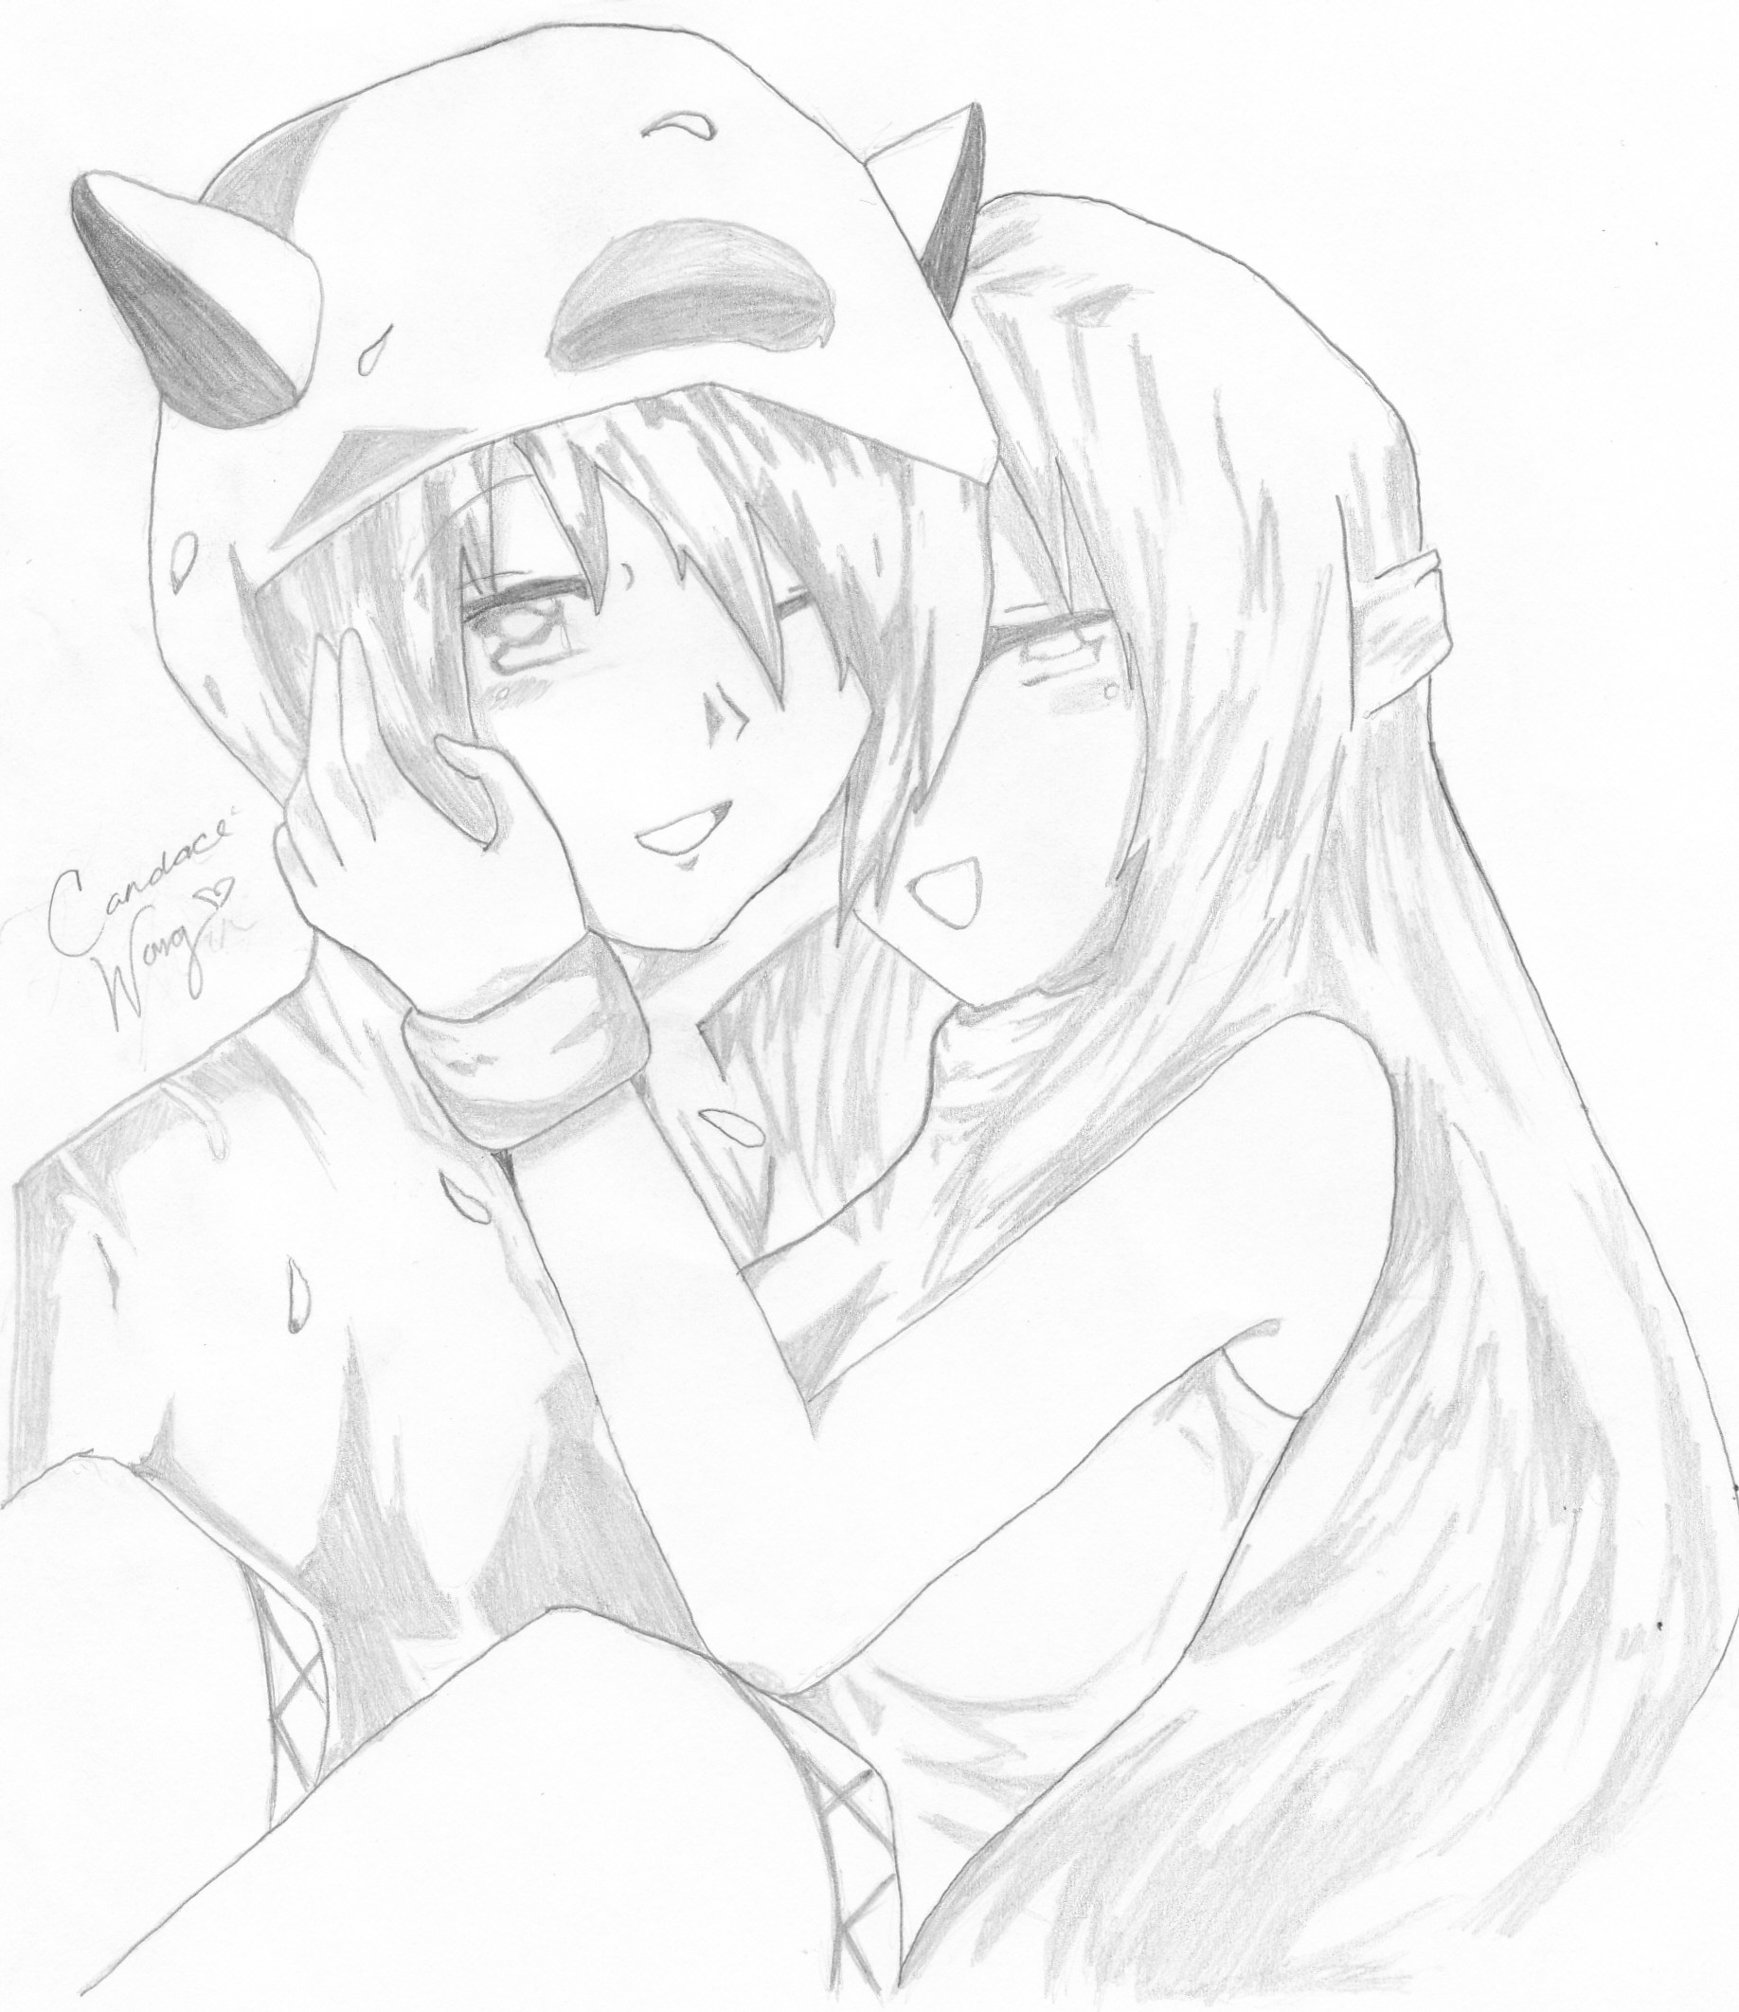 Cute Couple Drawing at GetDrawings.com | Free for personal use Cute ...